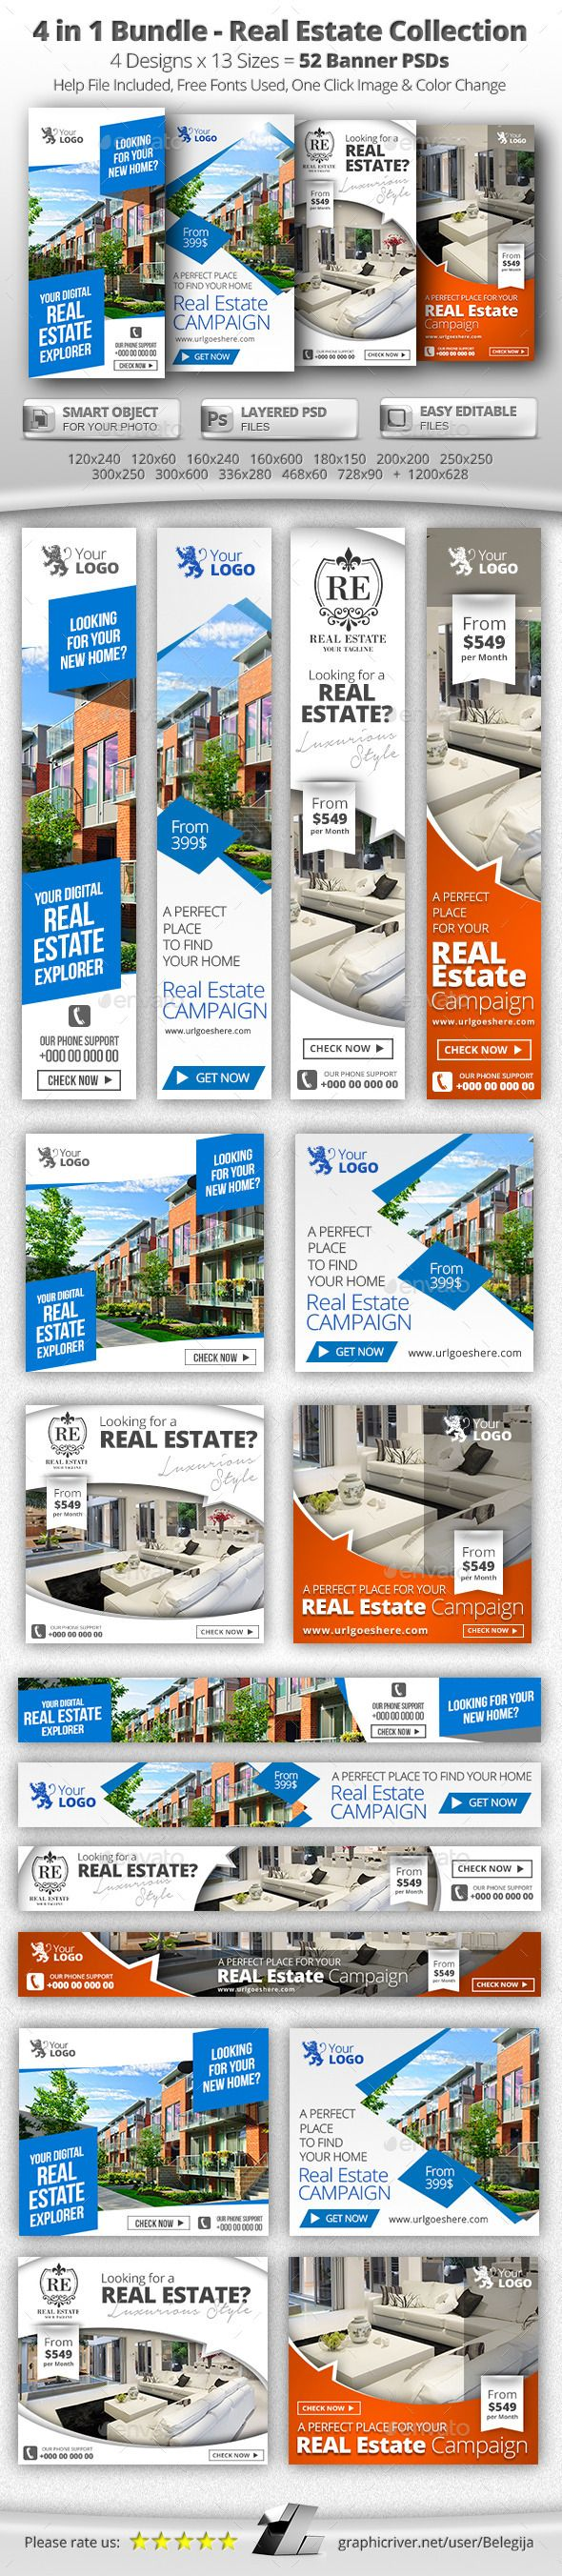 52 Real Estate Web & FB Banners - 4 in 1 Bundle Template #design #web Download: http://graphicriver.net/item/52-real-estate-web-fb-banners-4-in-1-bundle/11947695?ref=ksioks